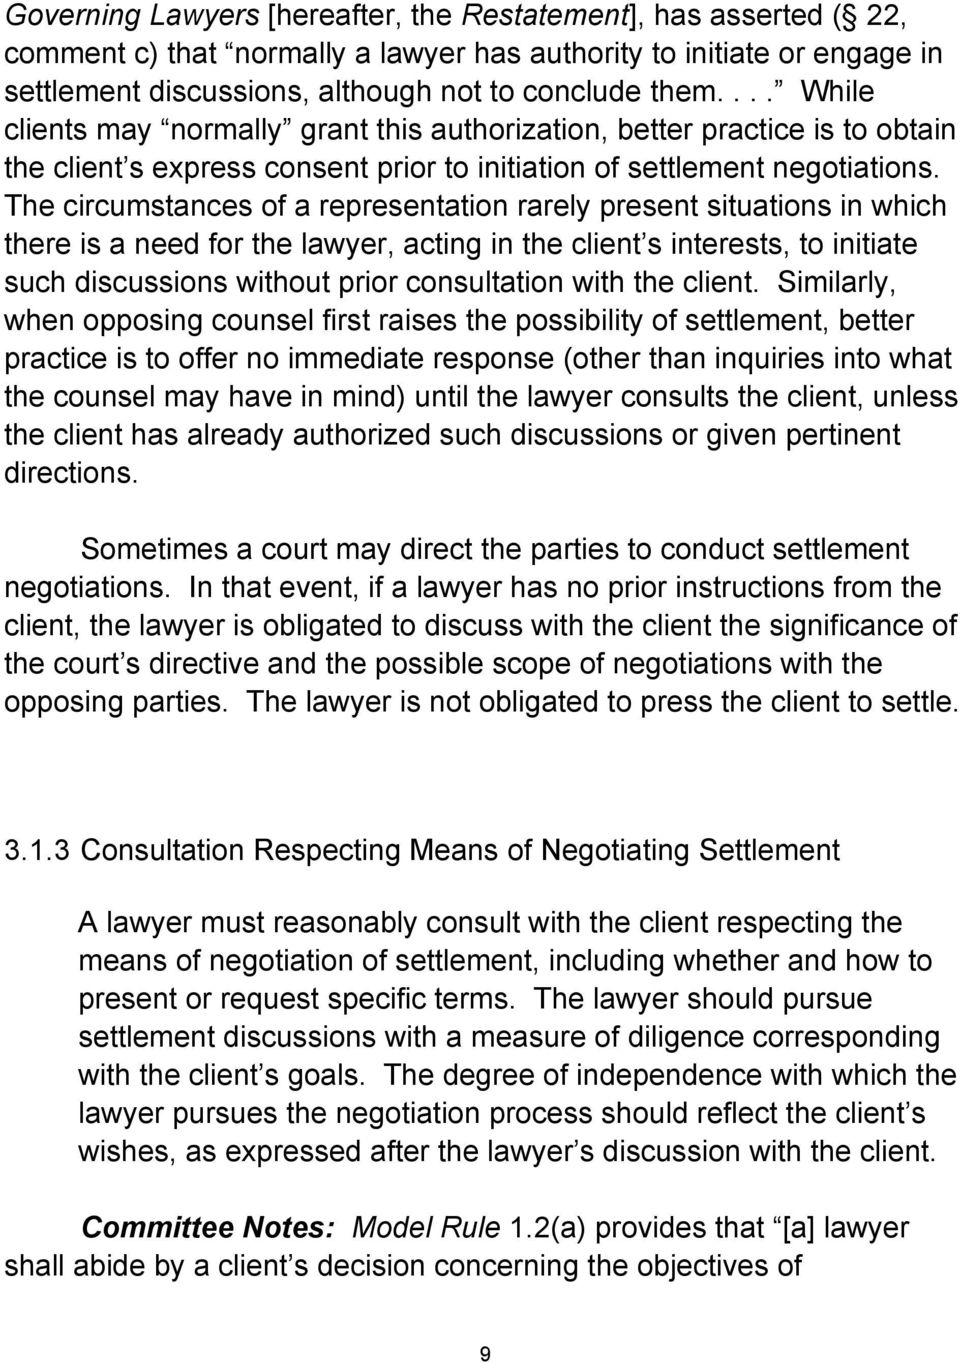 The circumstances of a representation rarely present situations in which there is a need for the lawyer, acting in the client s interests, to initiate such discussions without prior consultation with